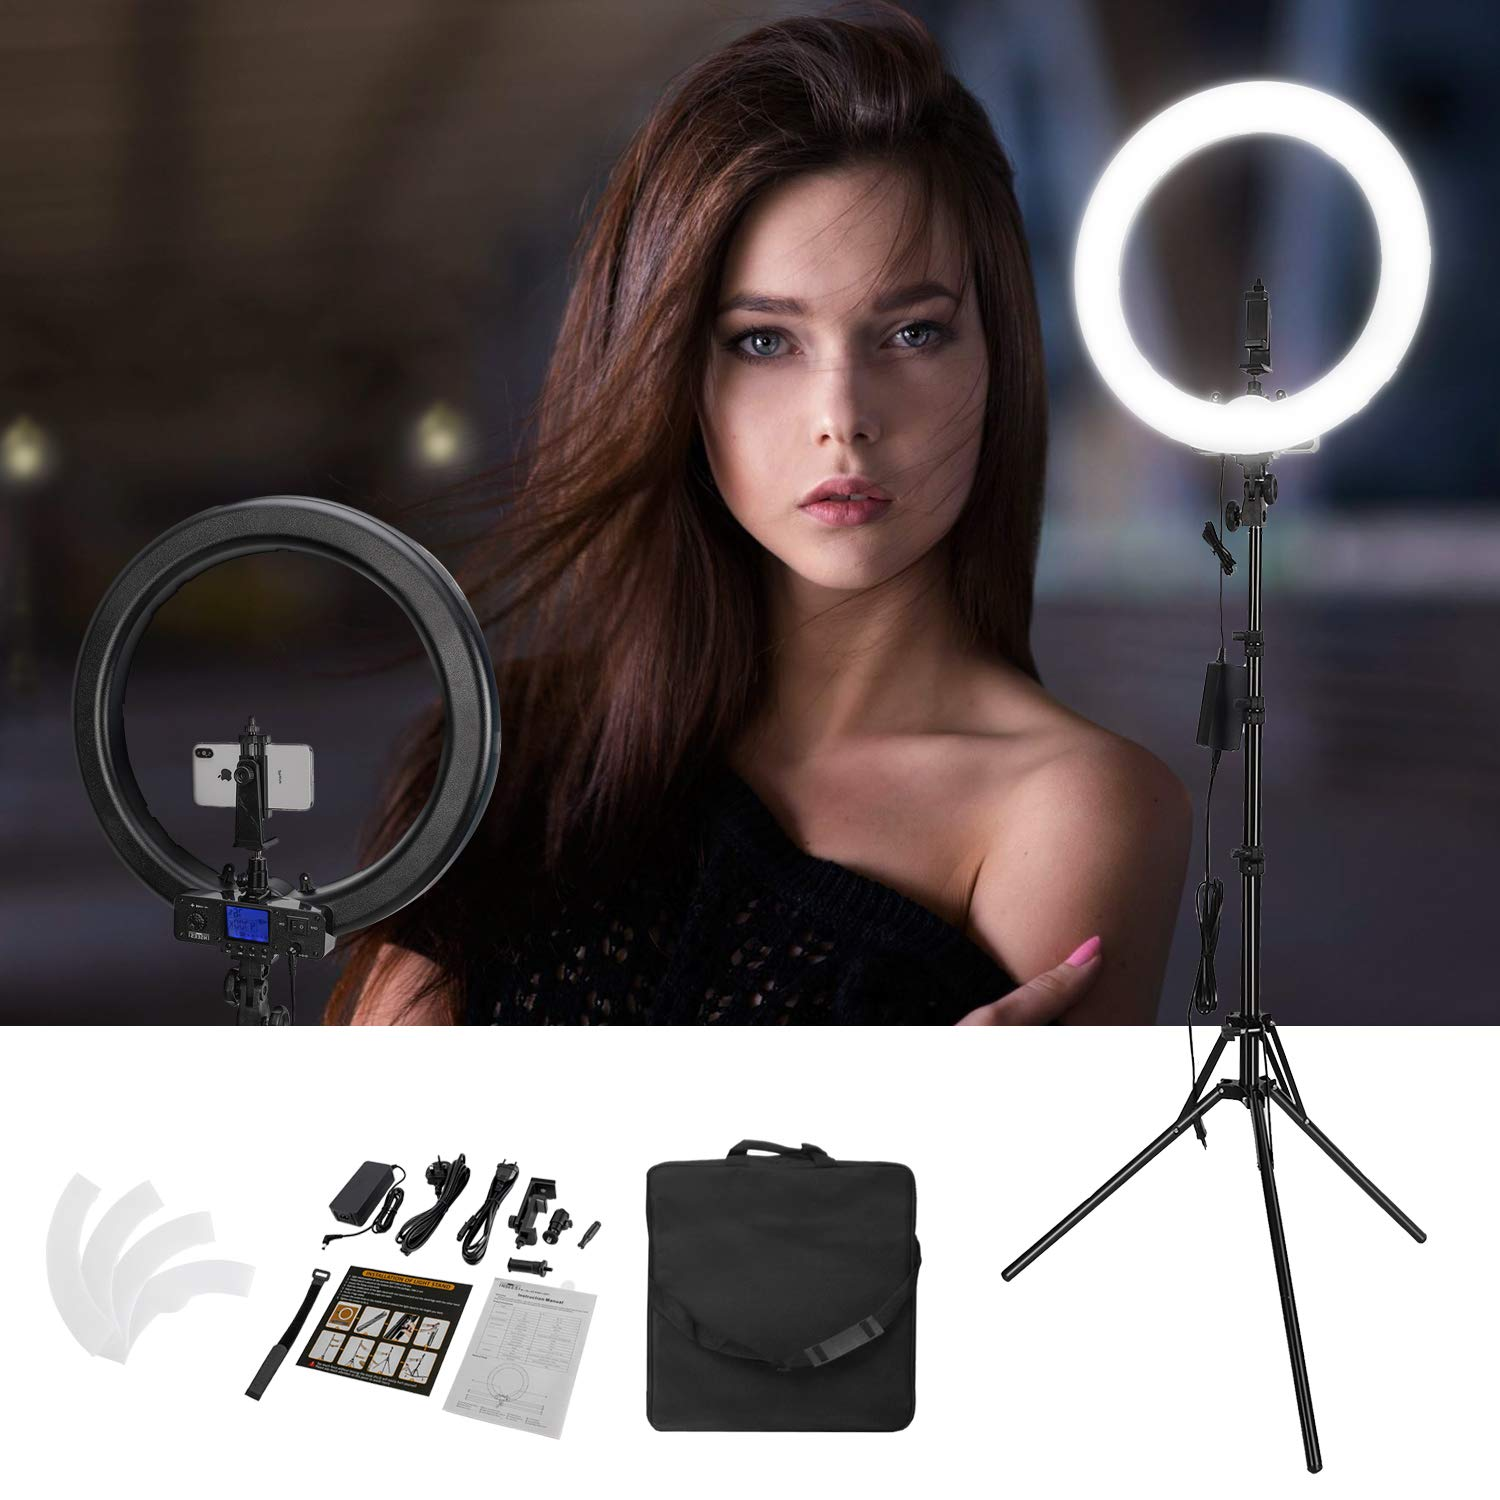 Upgraded Version 19inch Ring Light with LCD Display Adjustable Color Temperature 3000K-5800K with Stand, YouTube Makeup Dimmable Video LED Light Kit, for Video Shooting, Portrait, Vlog, Selfie